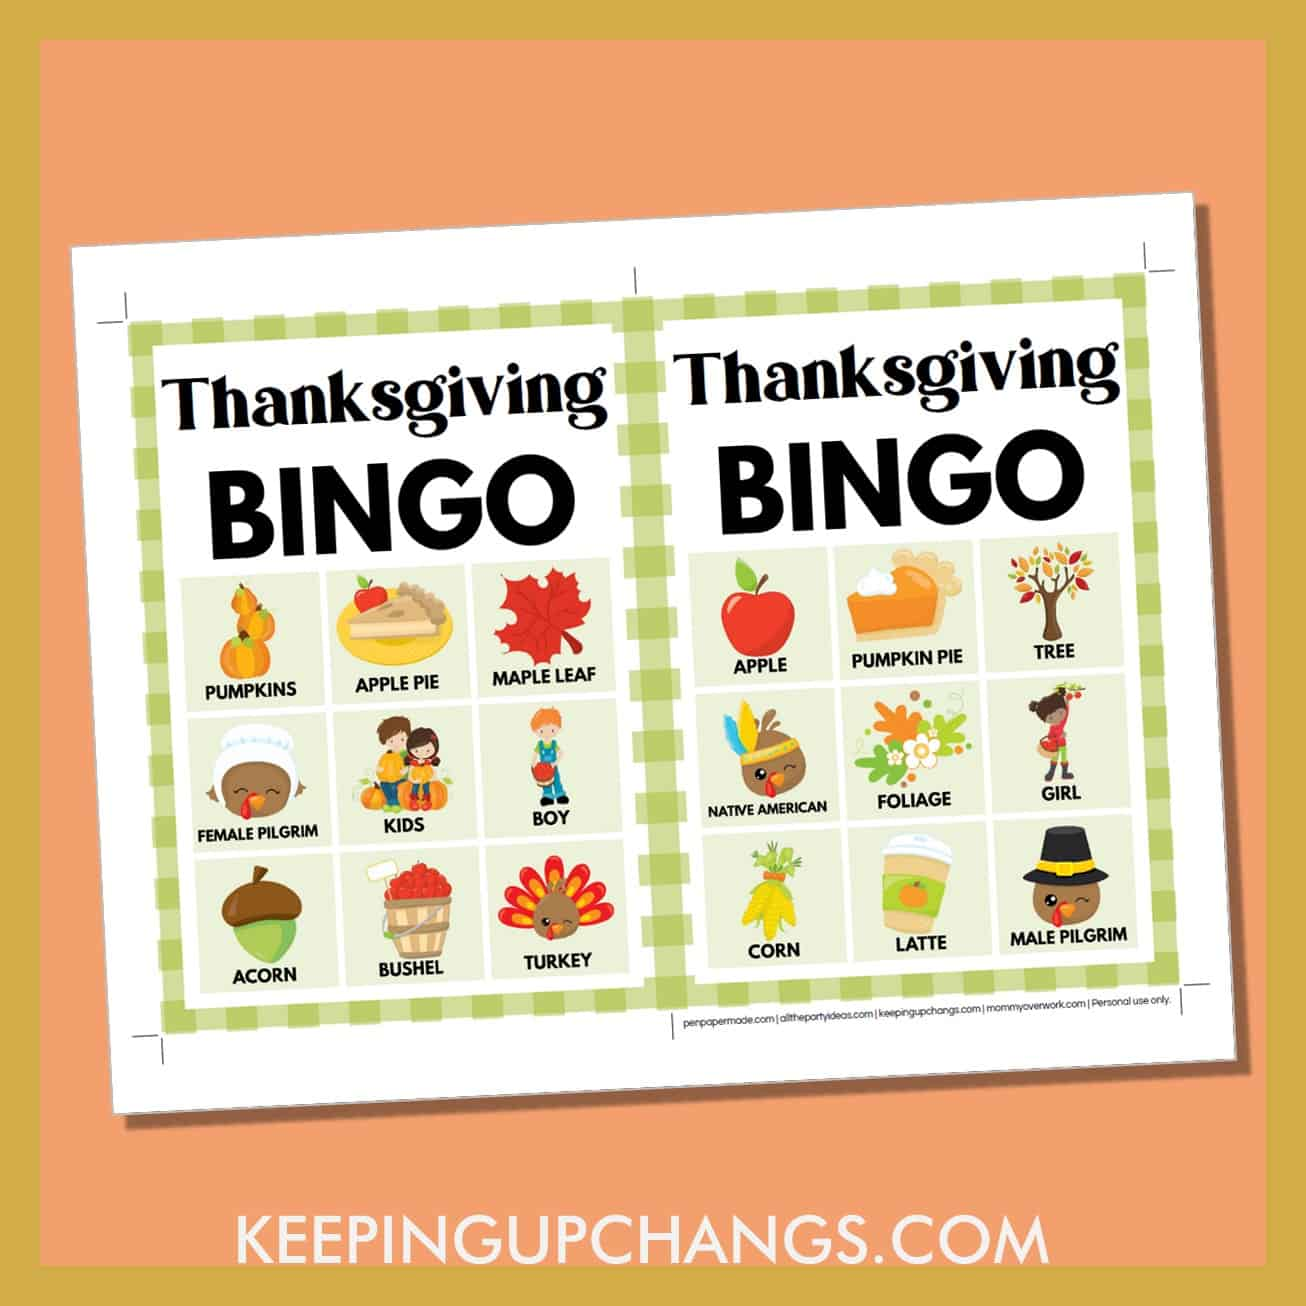 free fall thanksgiving bingo card 3x3 5x7 game boards with images and text words.